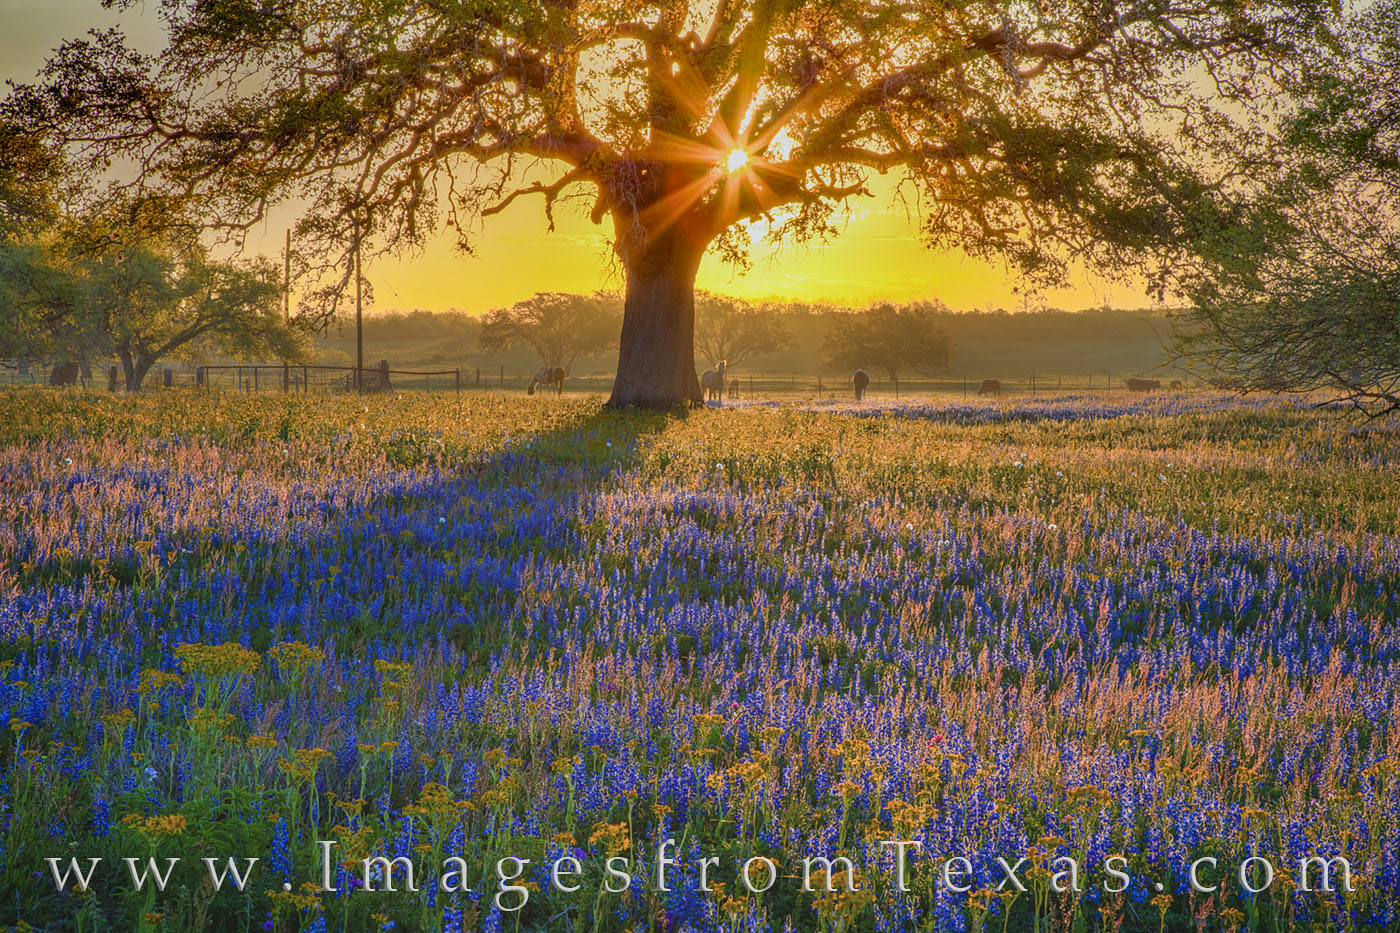 bluebonnets, oak tree, horses, sunlight, evening, poteet, atascosa county, san antonio, wildflowers, photo